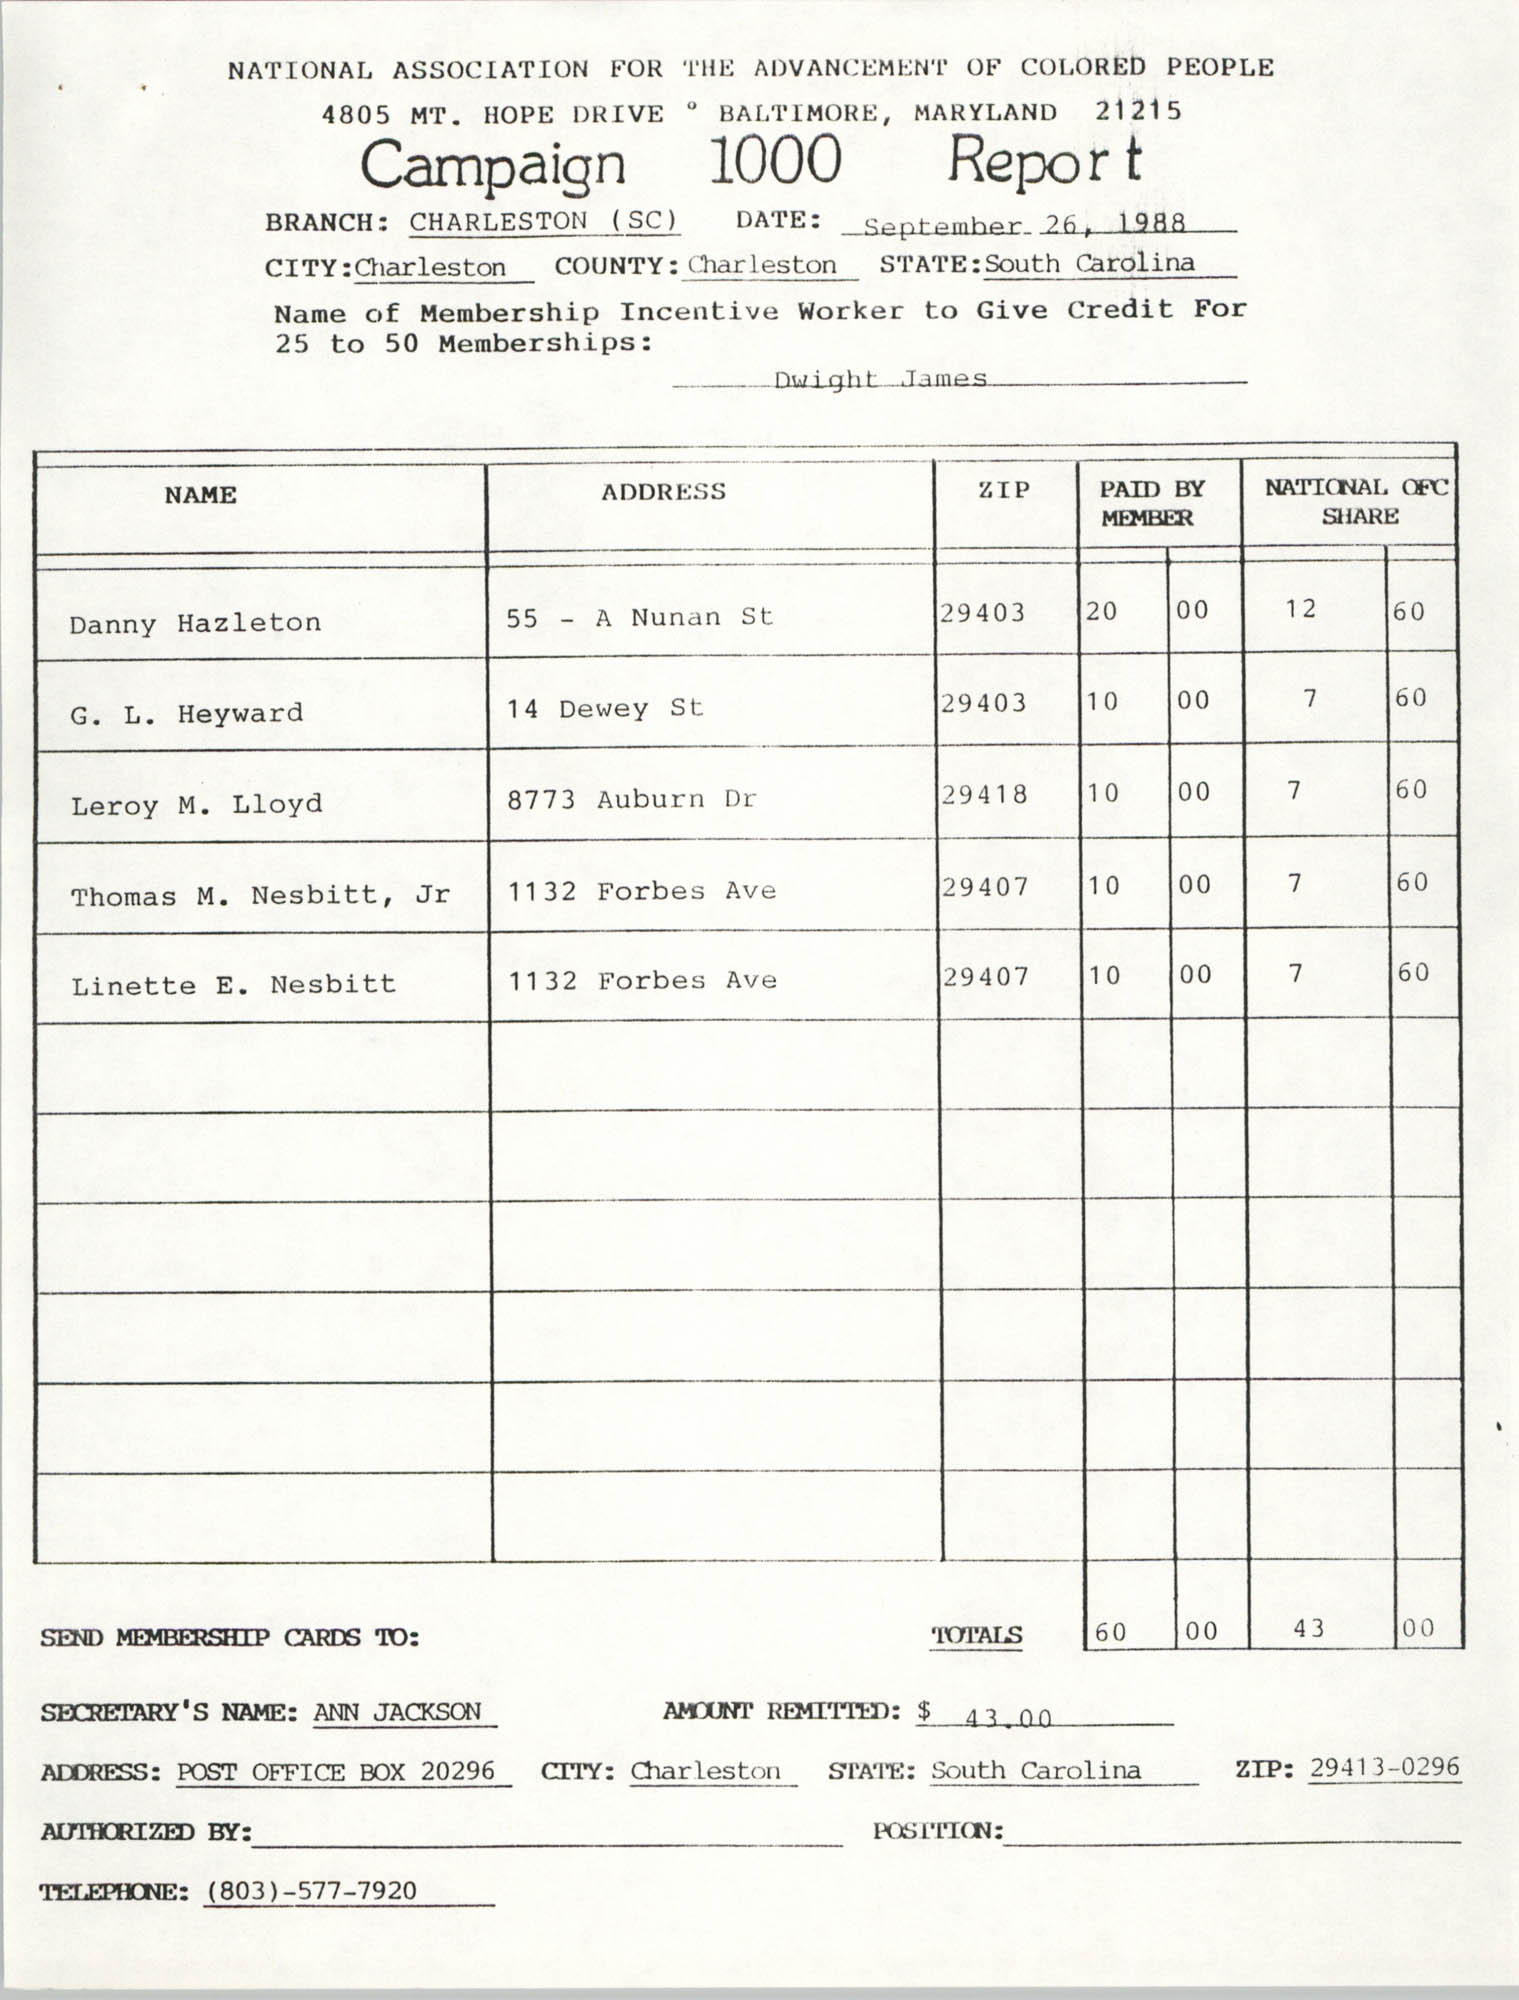 Campaign 1000 Report, Dwight James, Charleston Branch of the NAACP, September 26, 1988